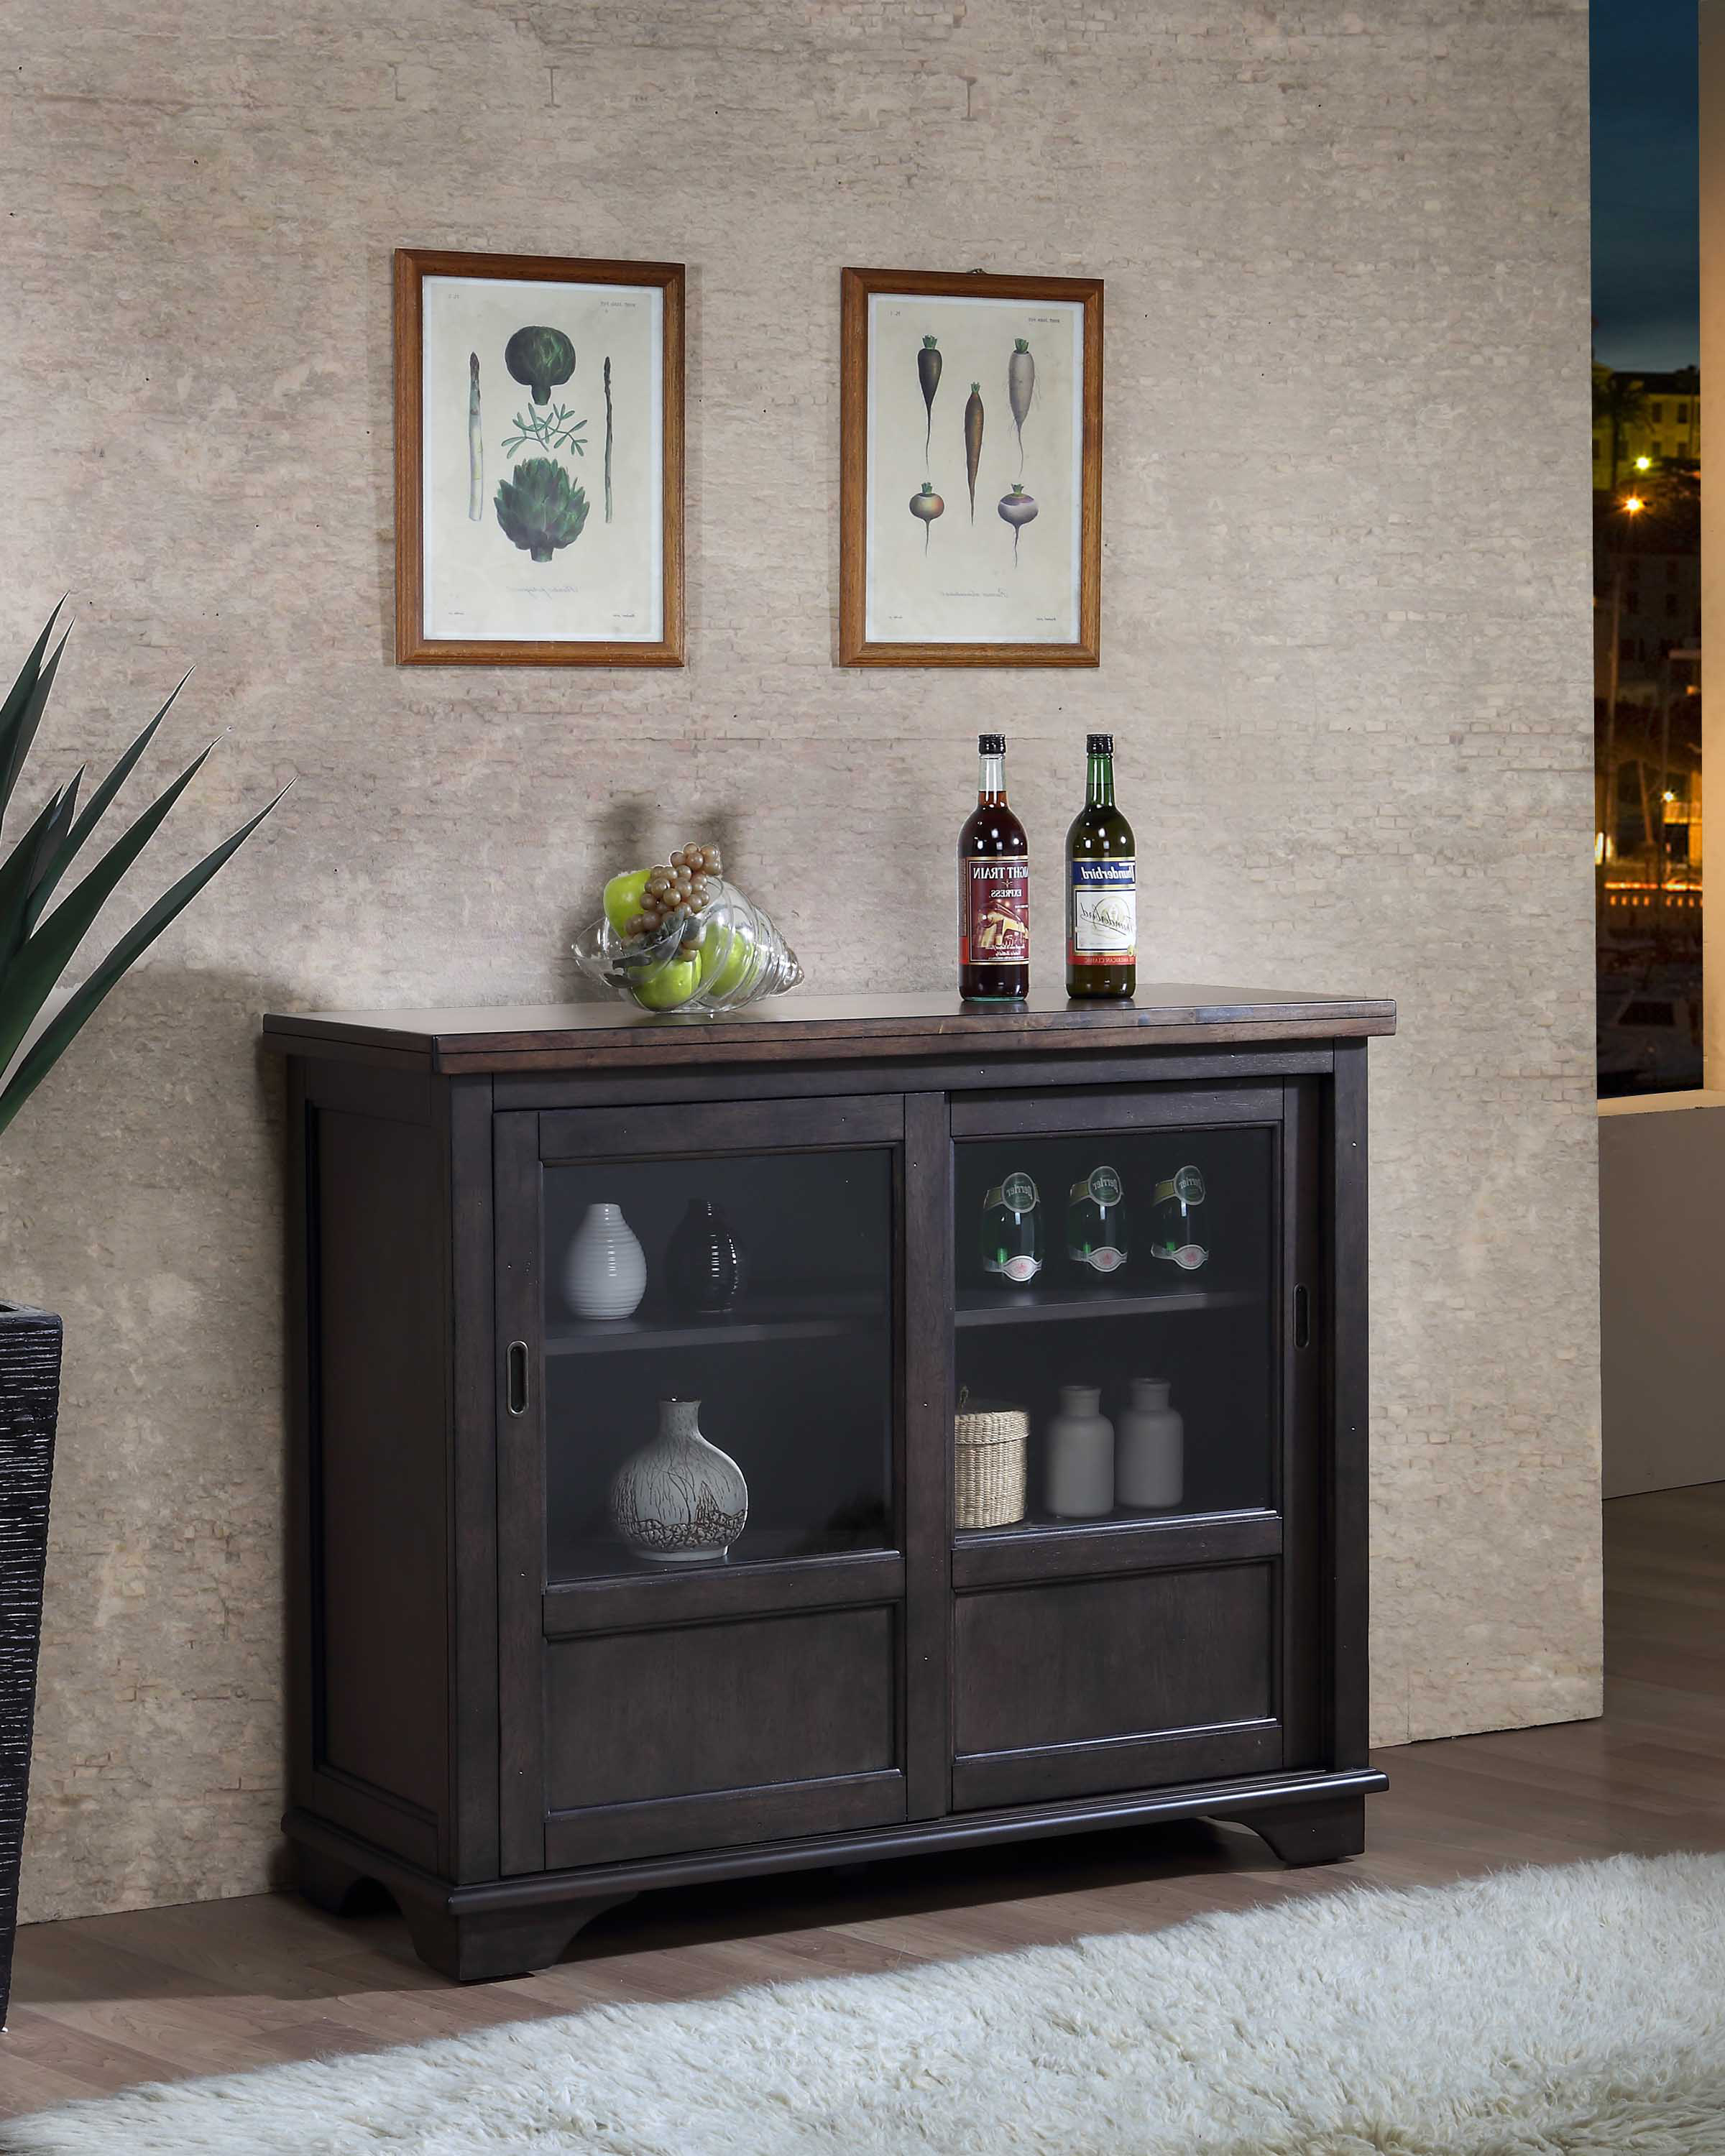 Grey Brown Wood Buffet Sideboard Server Display Storage Cabinet With Glass Sliding Doors by unknown